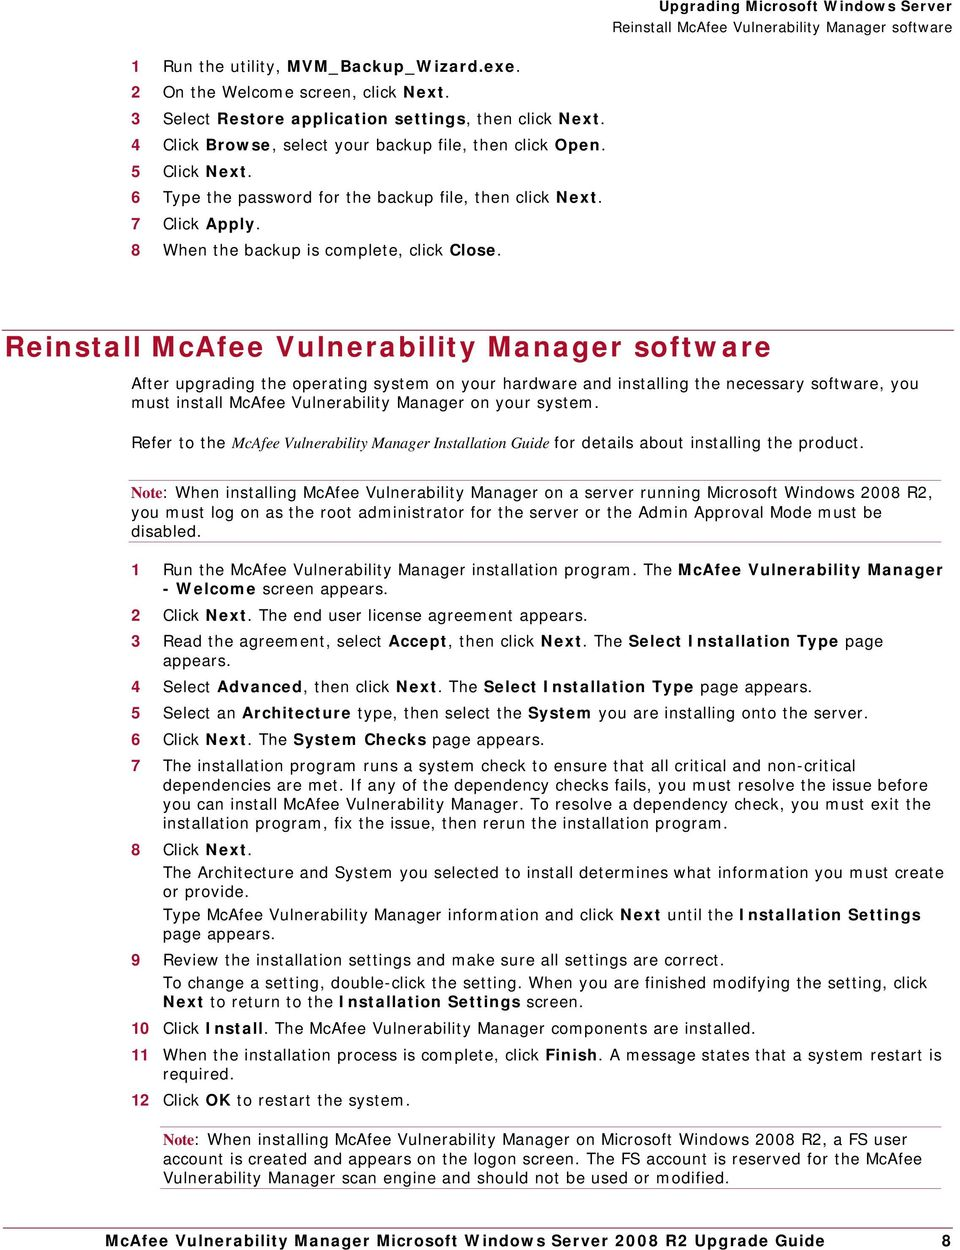 Reinstall McAfee Vulnerability Manager software After upgrading the operating system on your hardware and installing the necessary software, you must install McAfee Vulnerability Manager on your